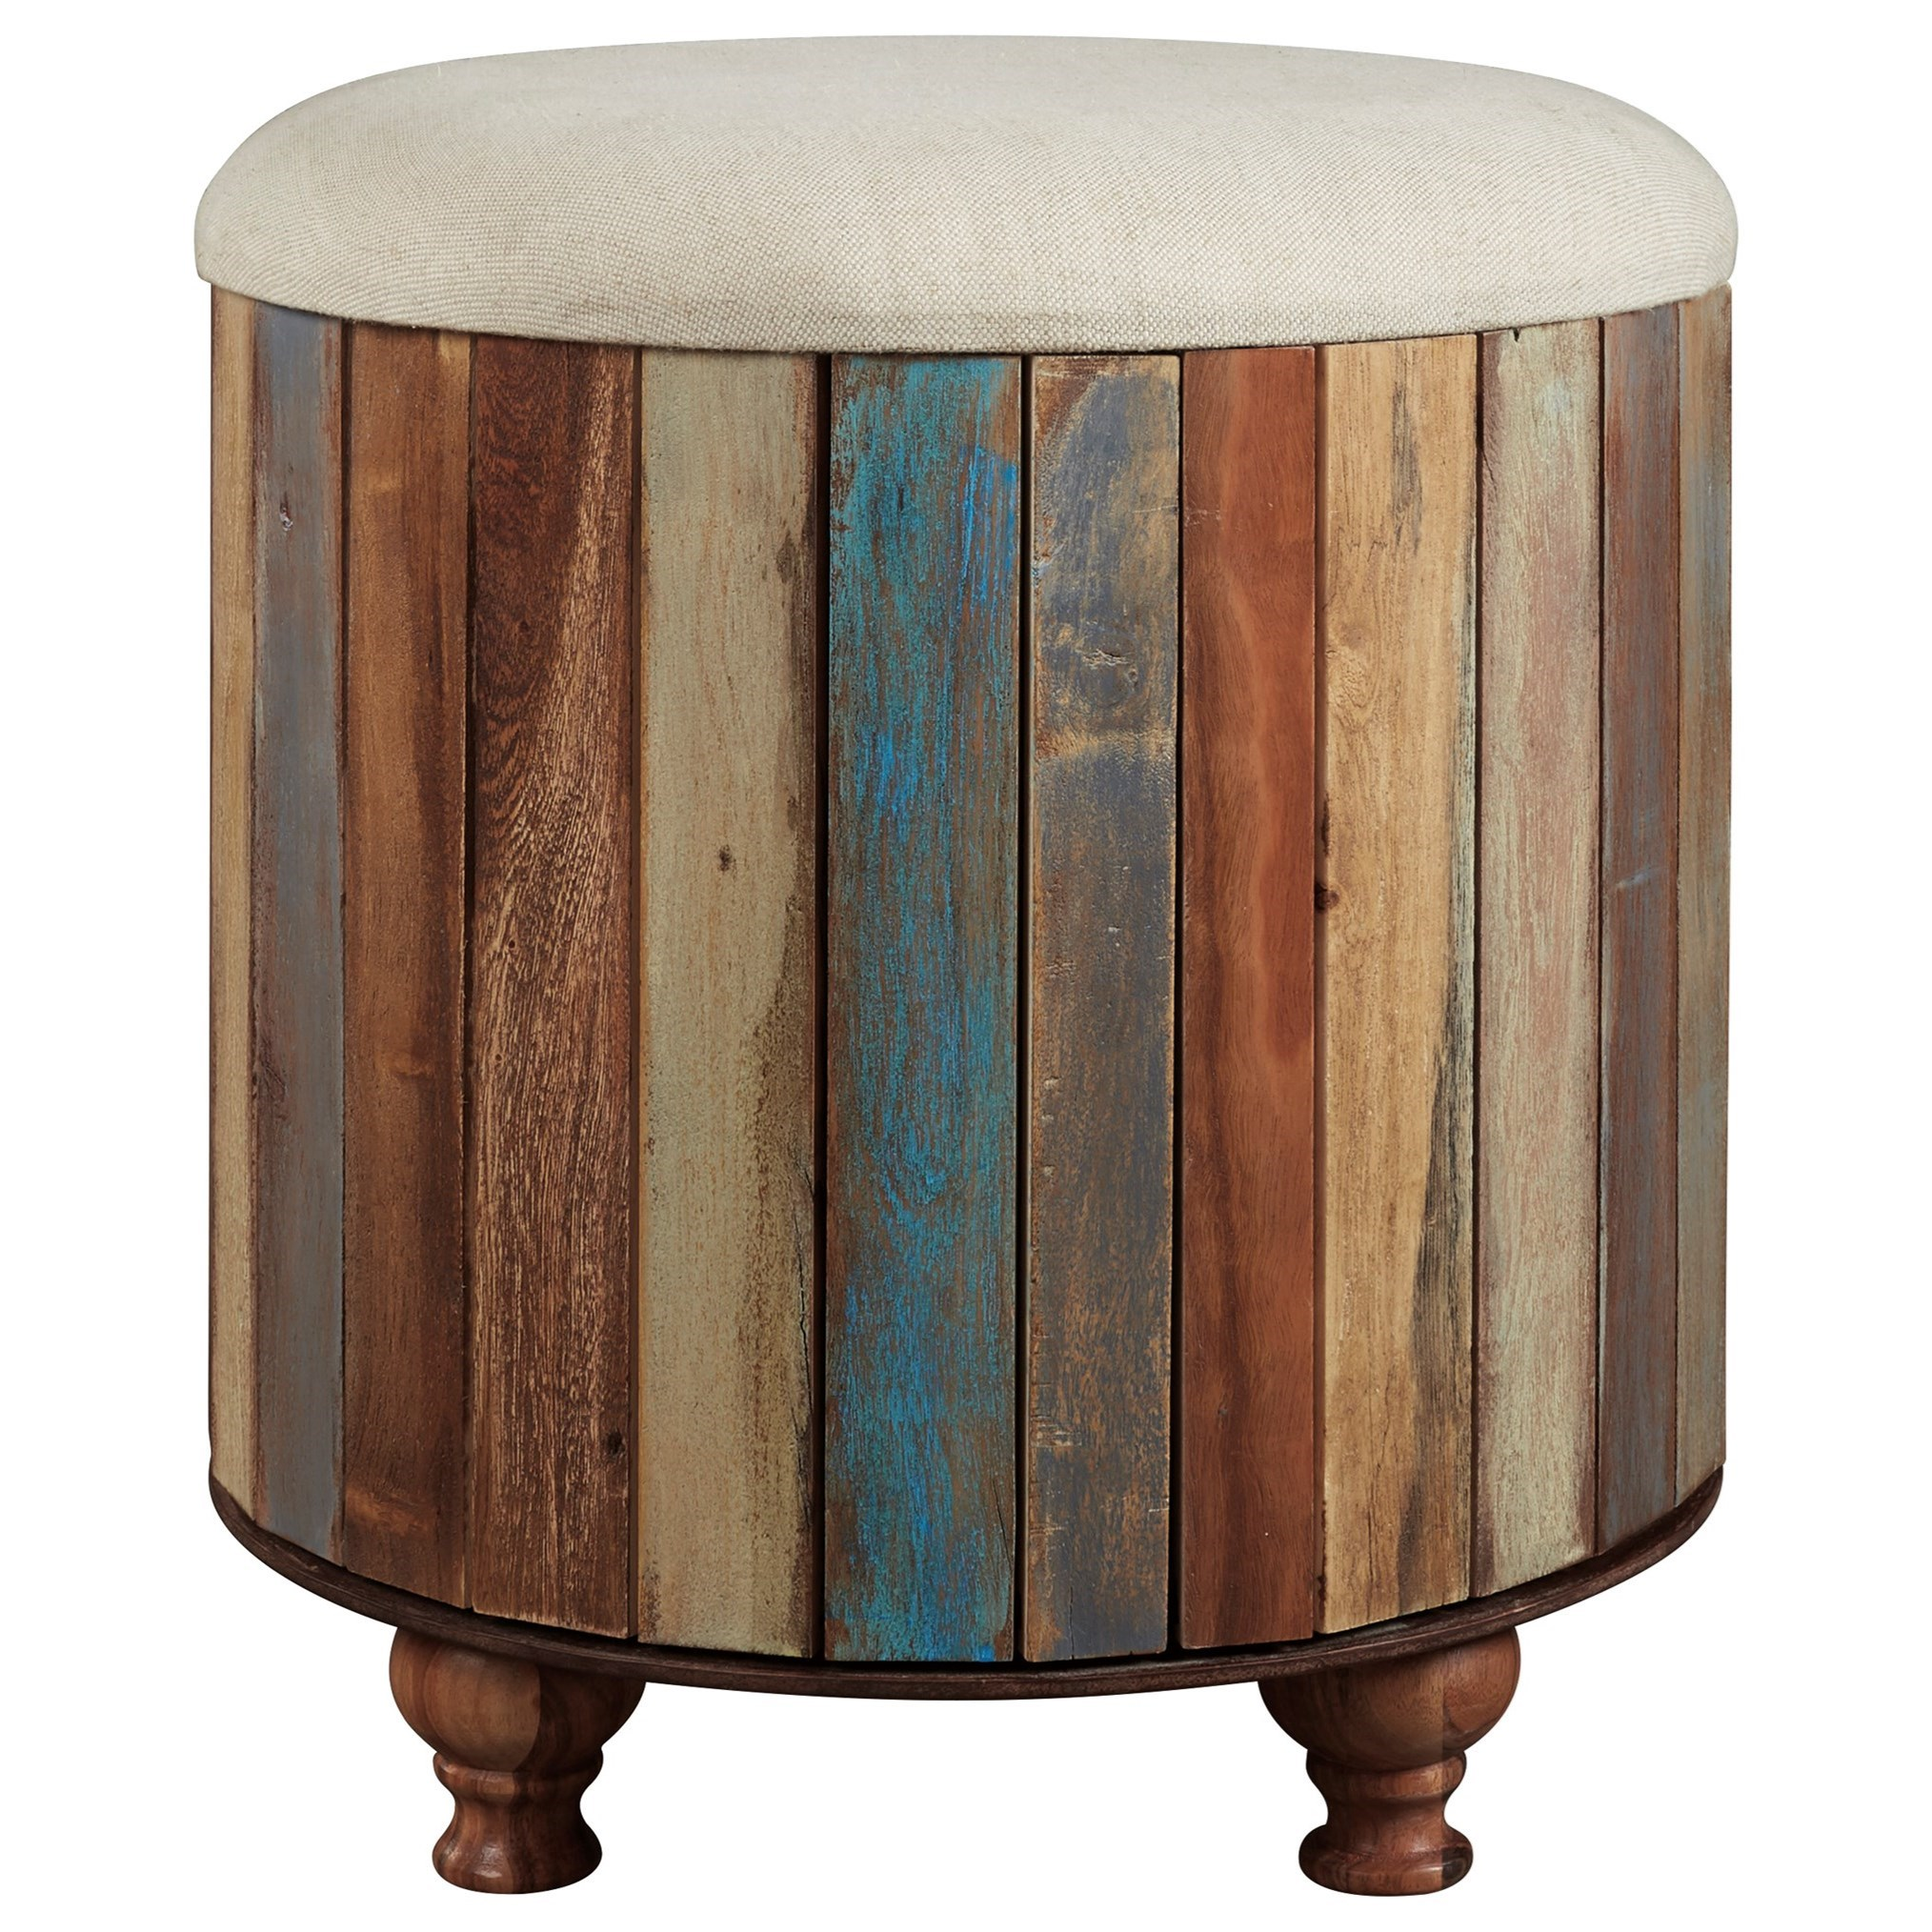 Signature Design By Ashley Oristano Multicolor Recycled Wood Storage Ottoman With Upholstered Top Houston S Yuma Furniture Ottomans